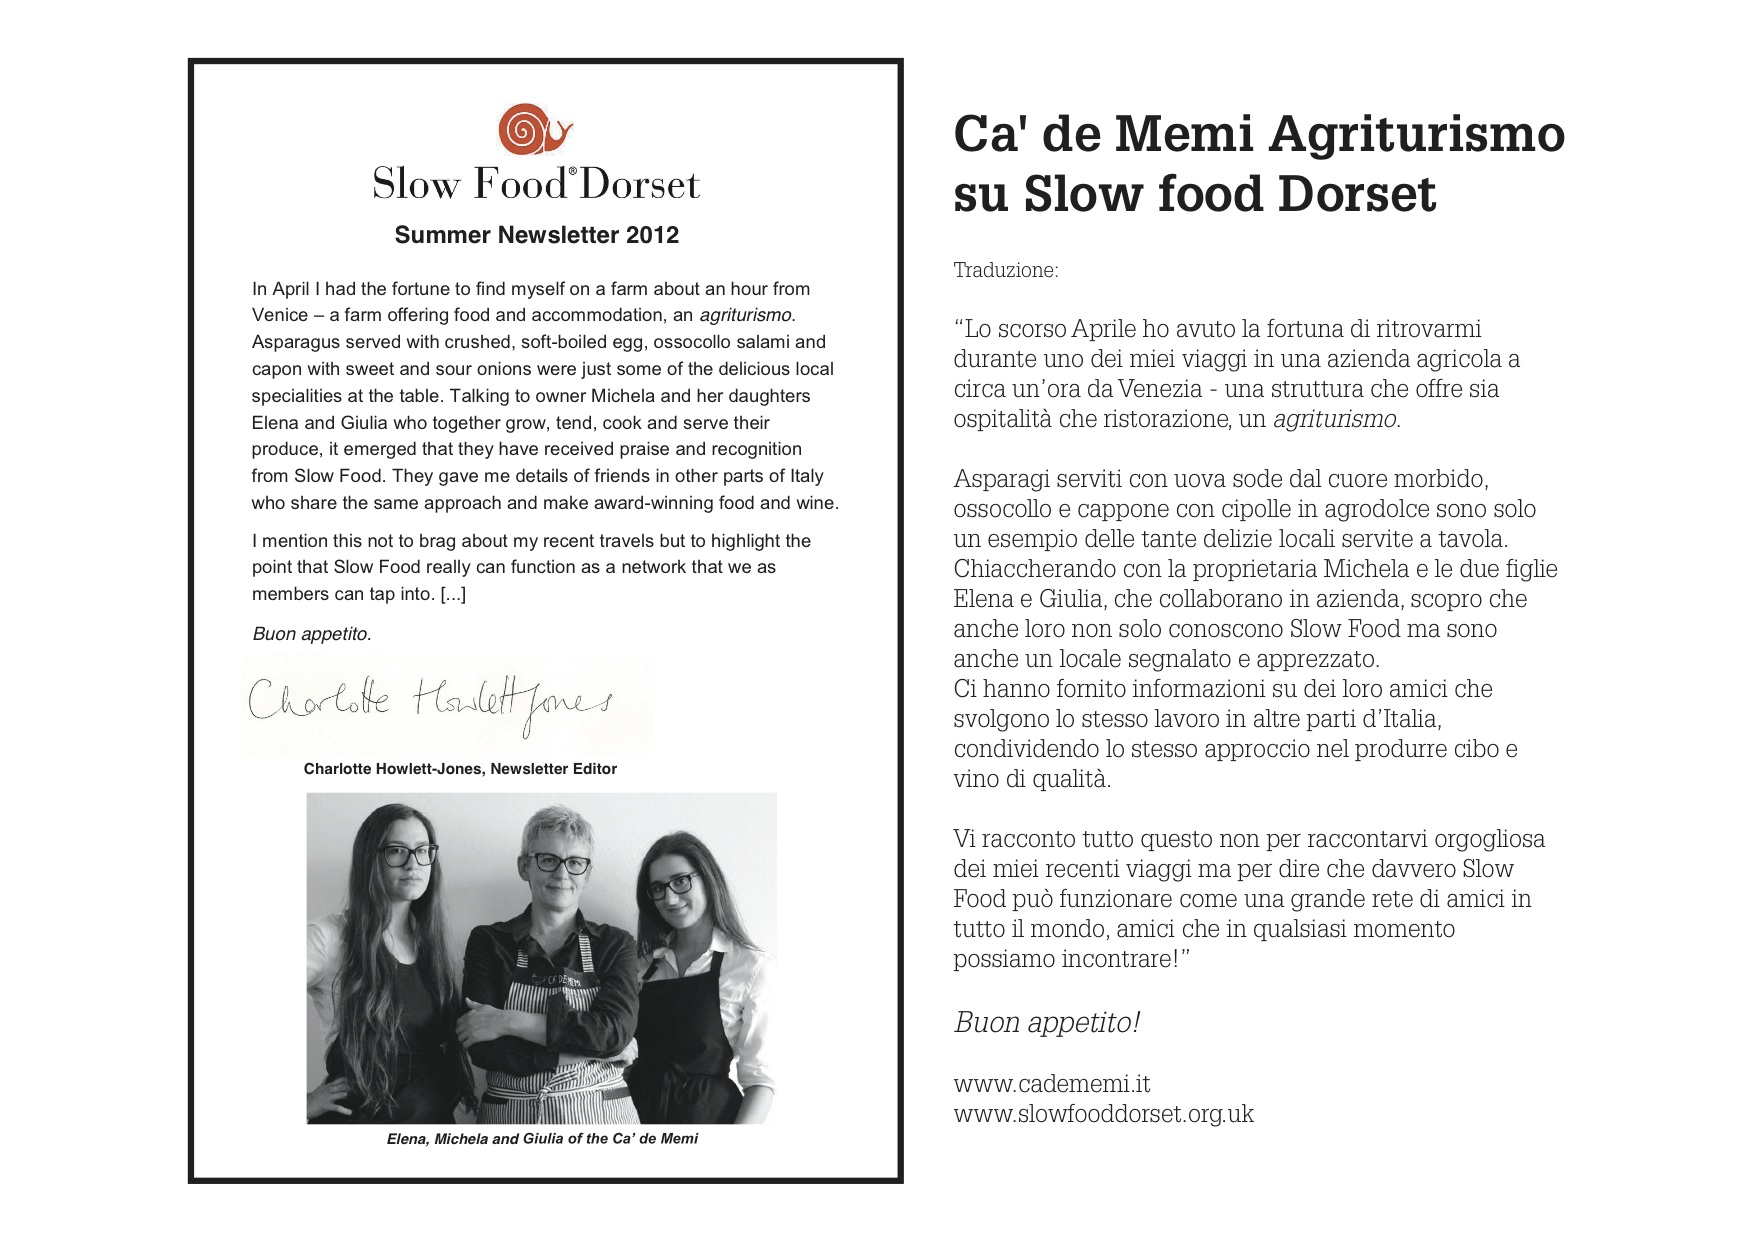 newsletter_dorset_slow_food_cadememi